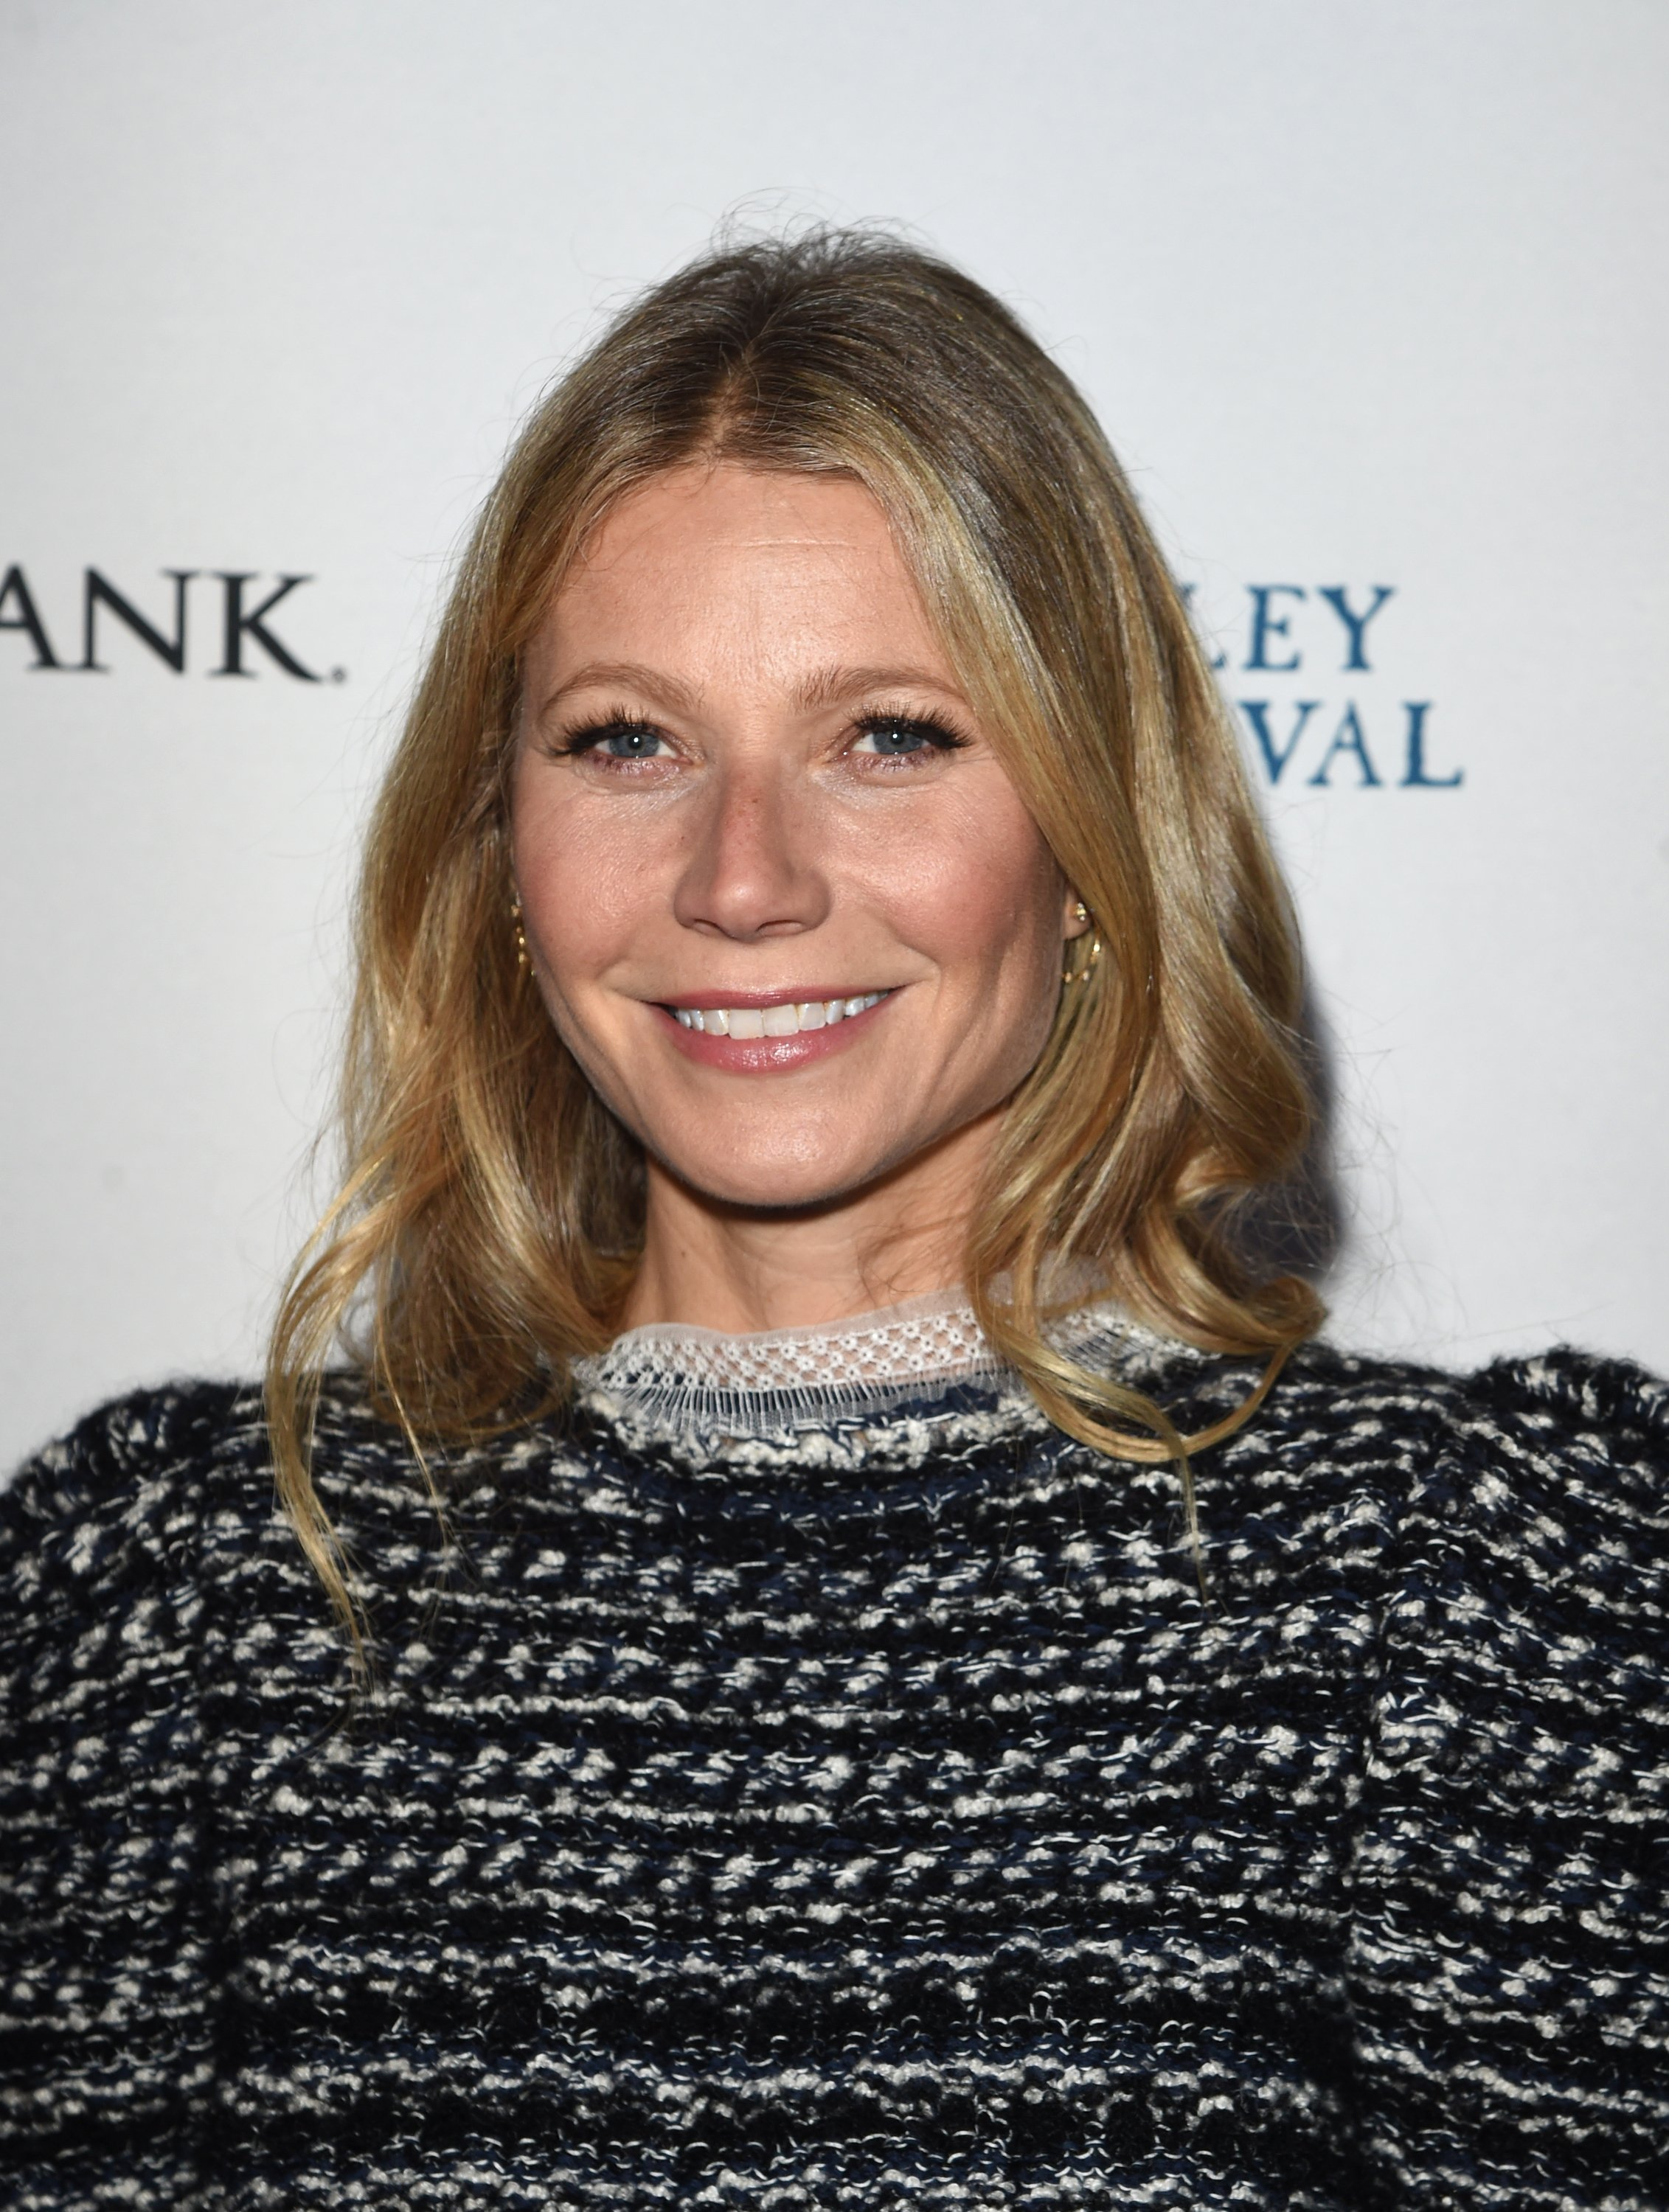 Qwyneth Paltrow pictured at the 2018 Sun Valley Film Festival - Vision Award Dinner, Idaho, 2018. | Photo: Getty Images